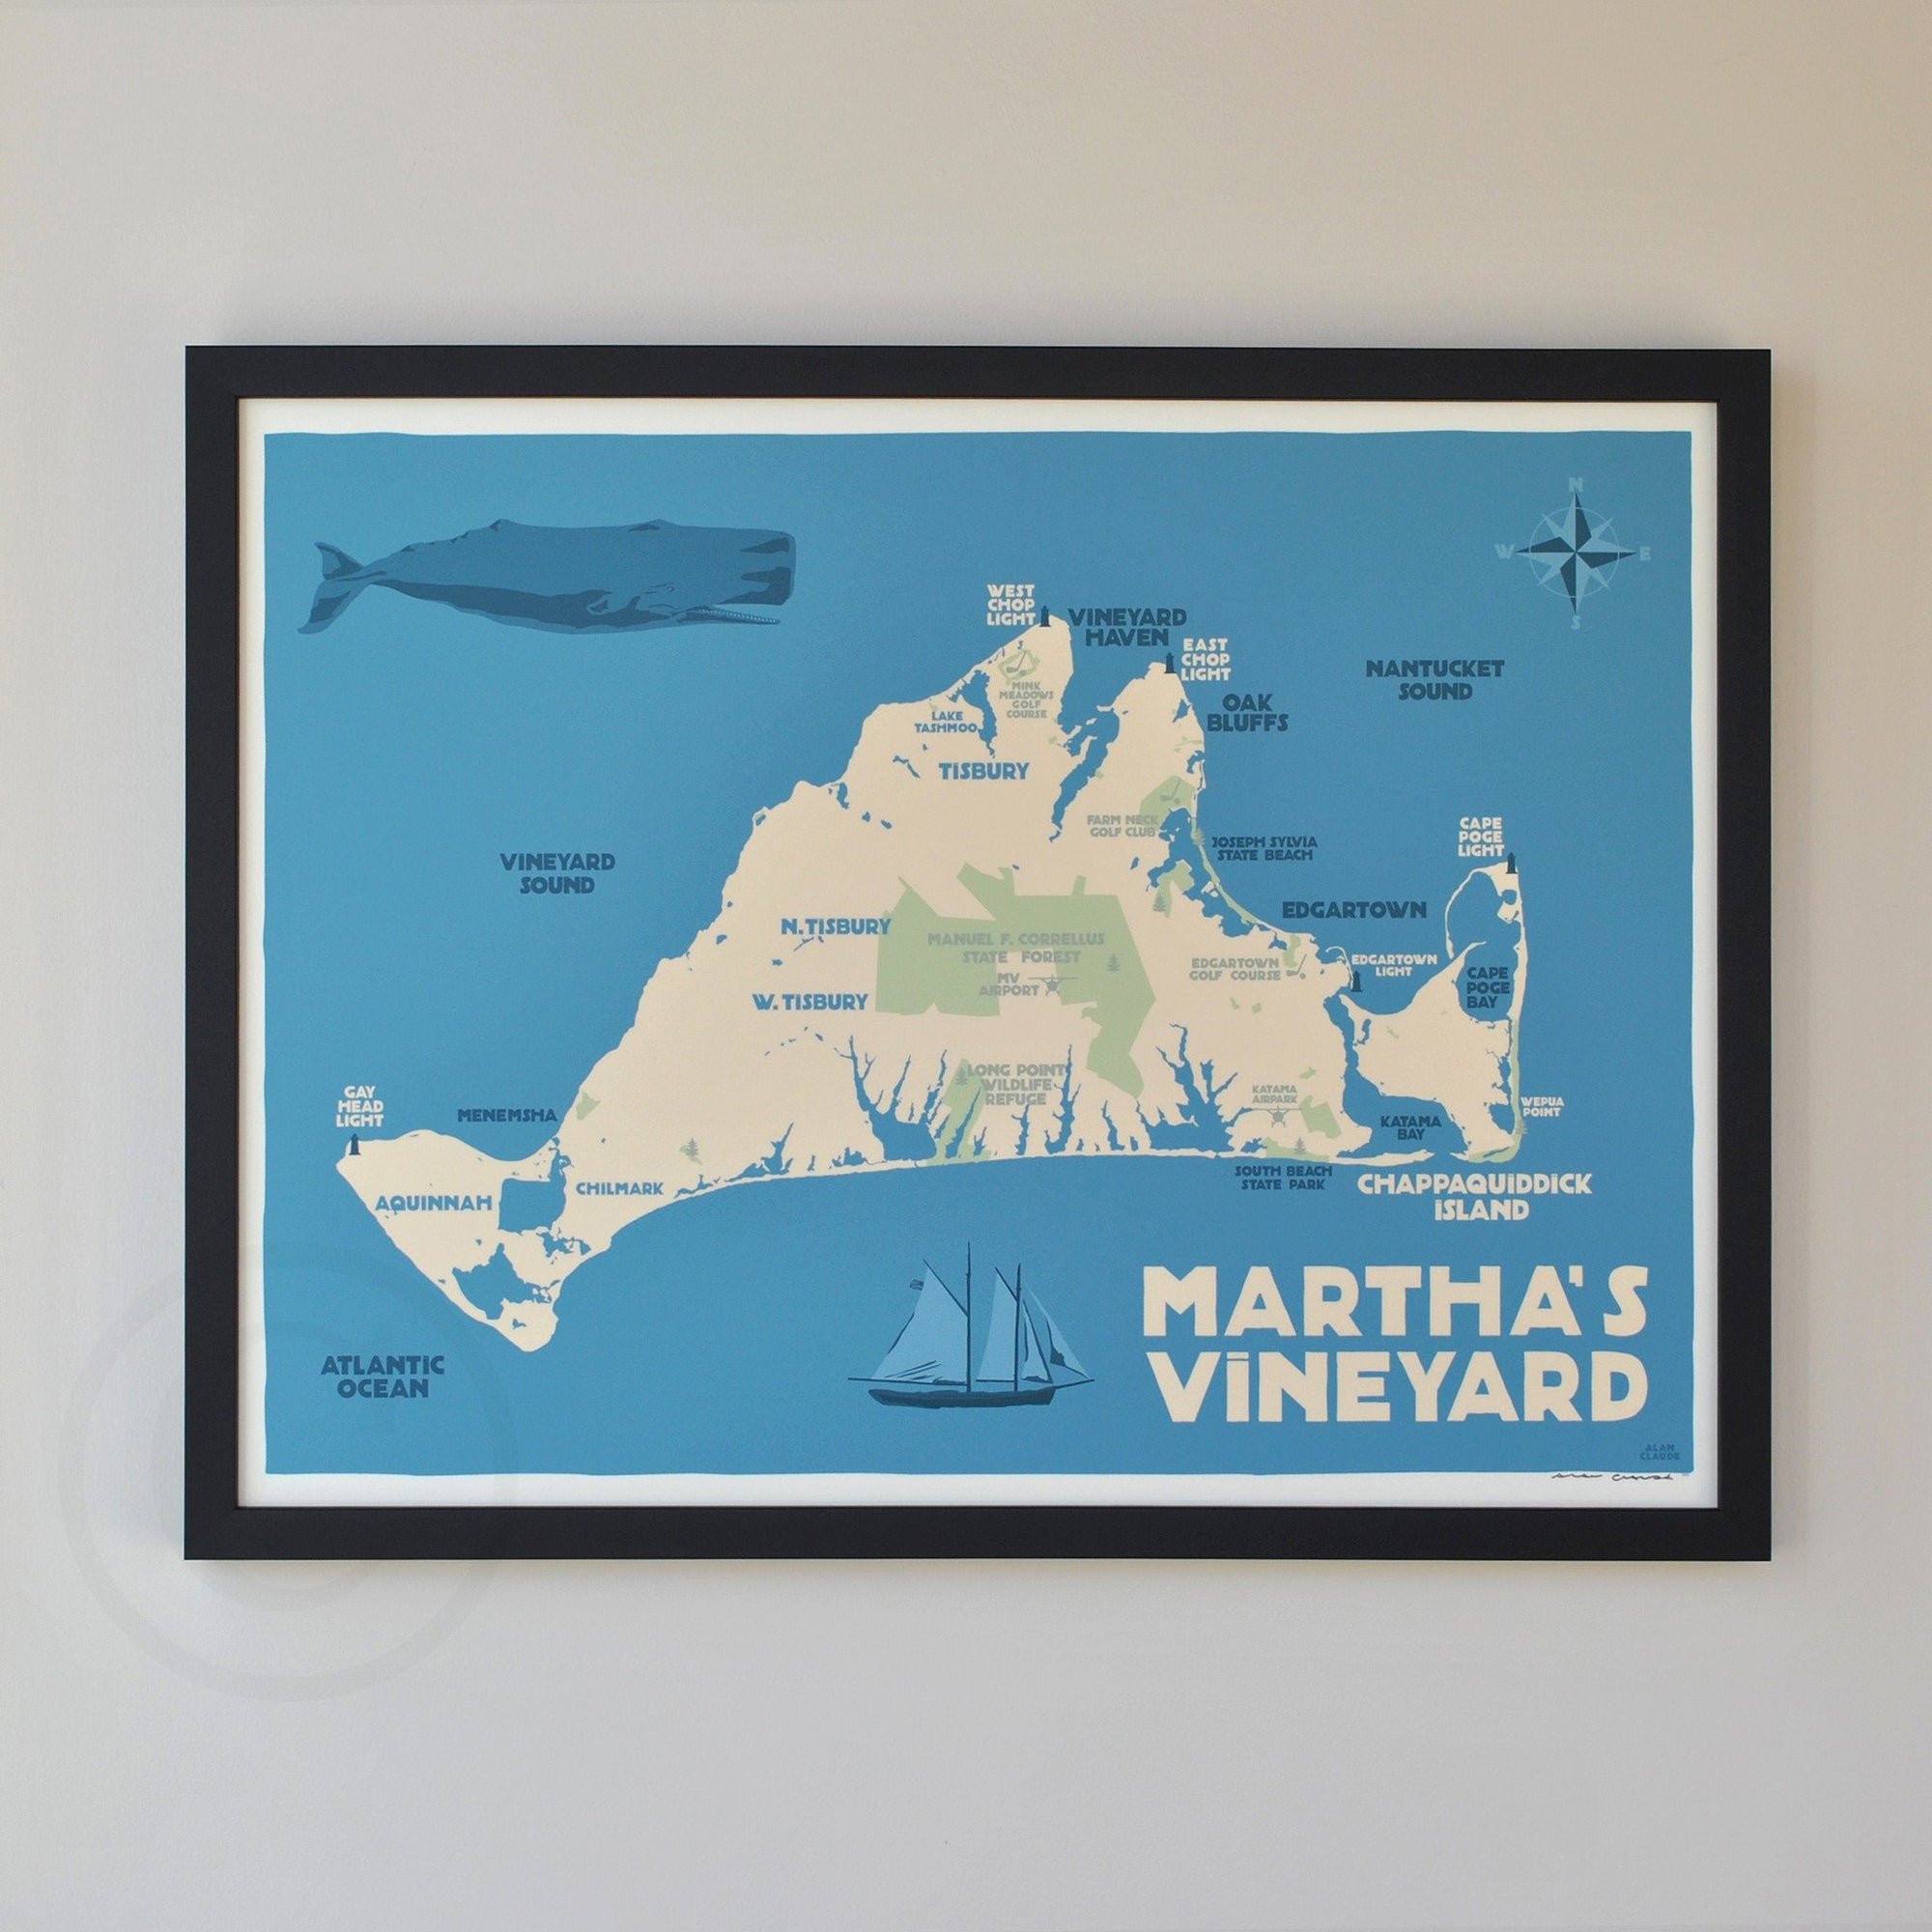 "Martha's Vineyard Map Art Print 18"" x 24"" Framed Travel Poster - Massachusetts"